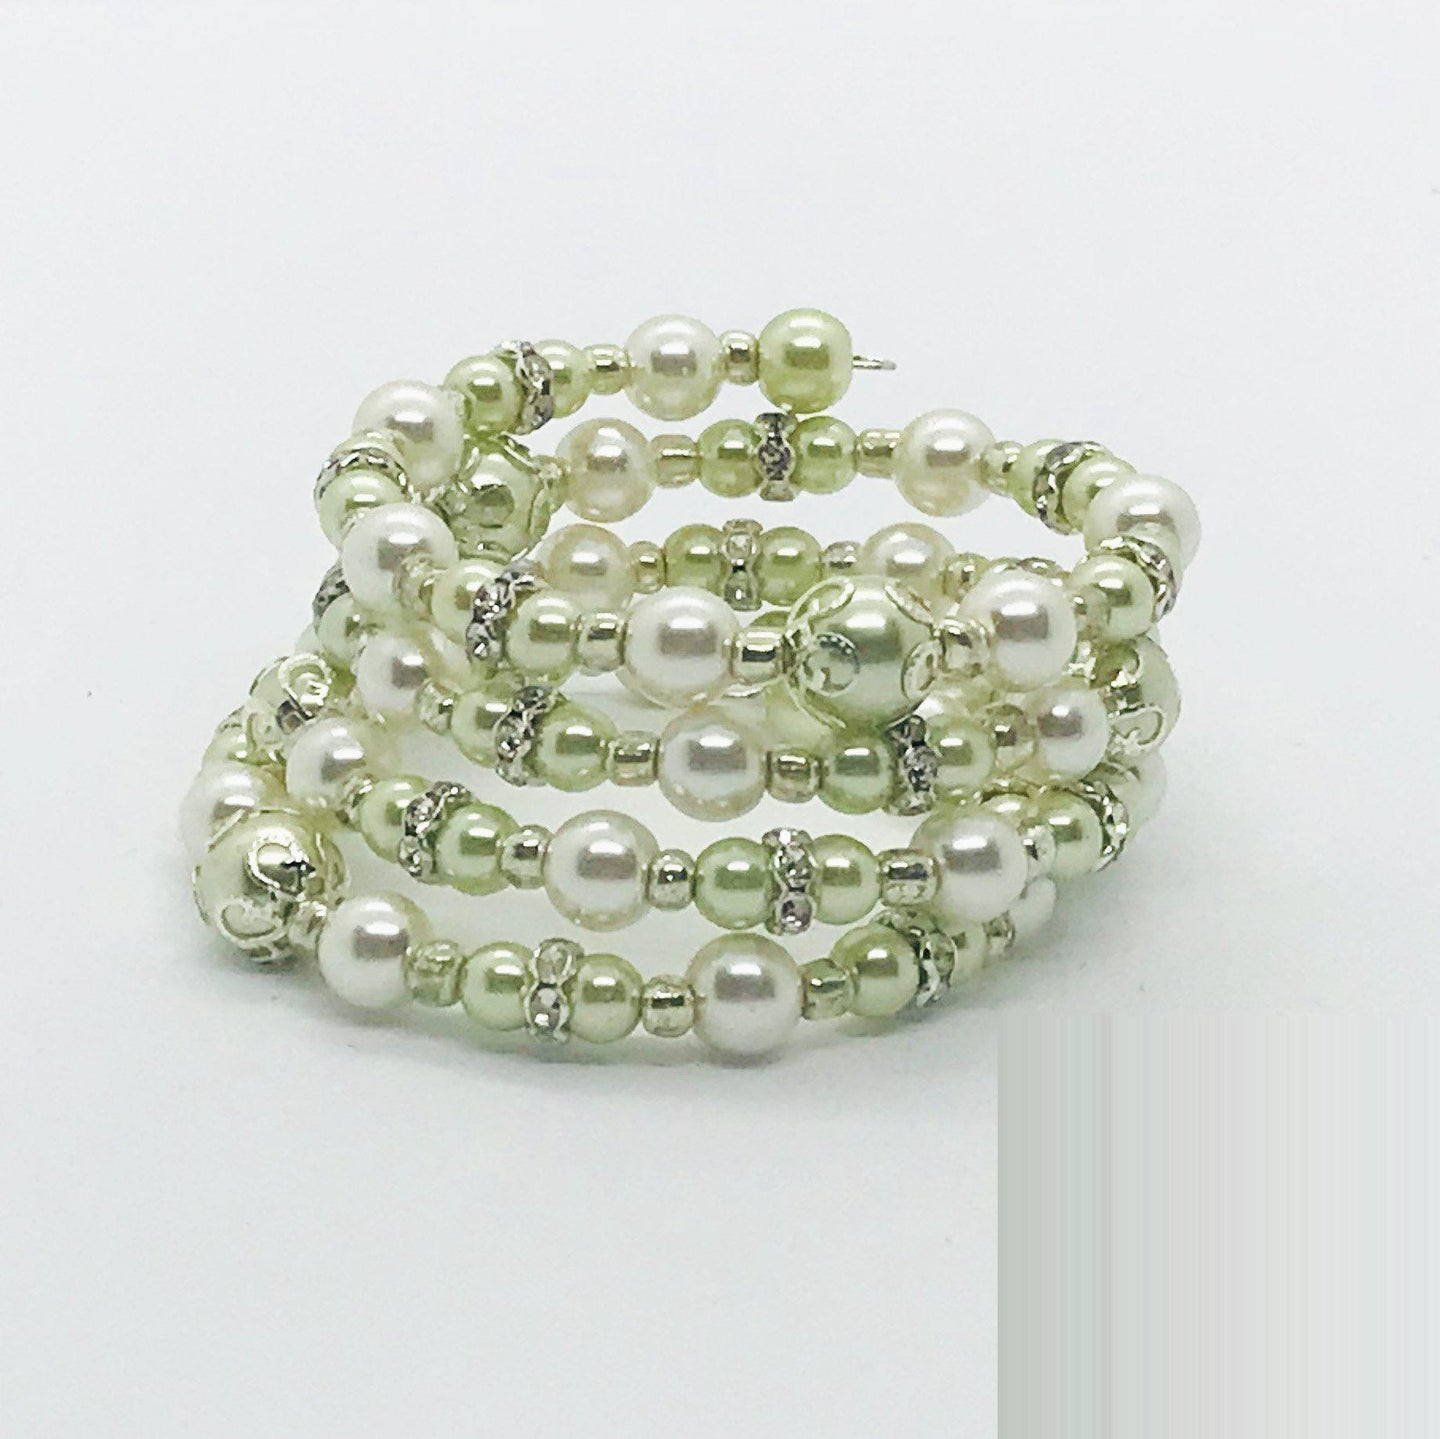 Glass Bead Wrap Bracelet - MB312